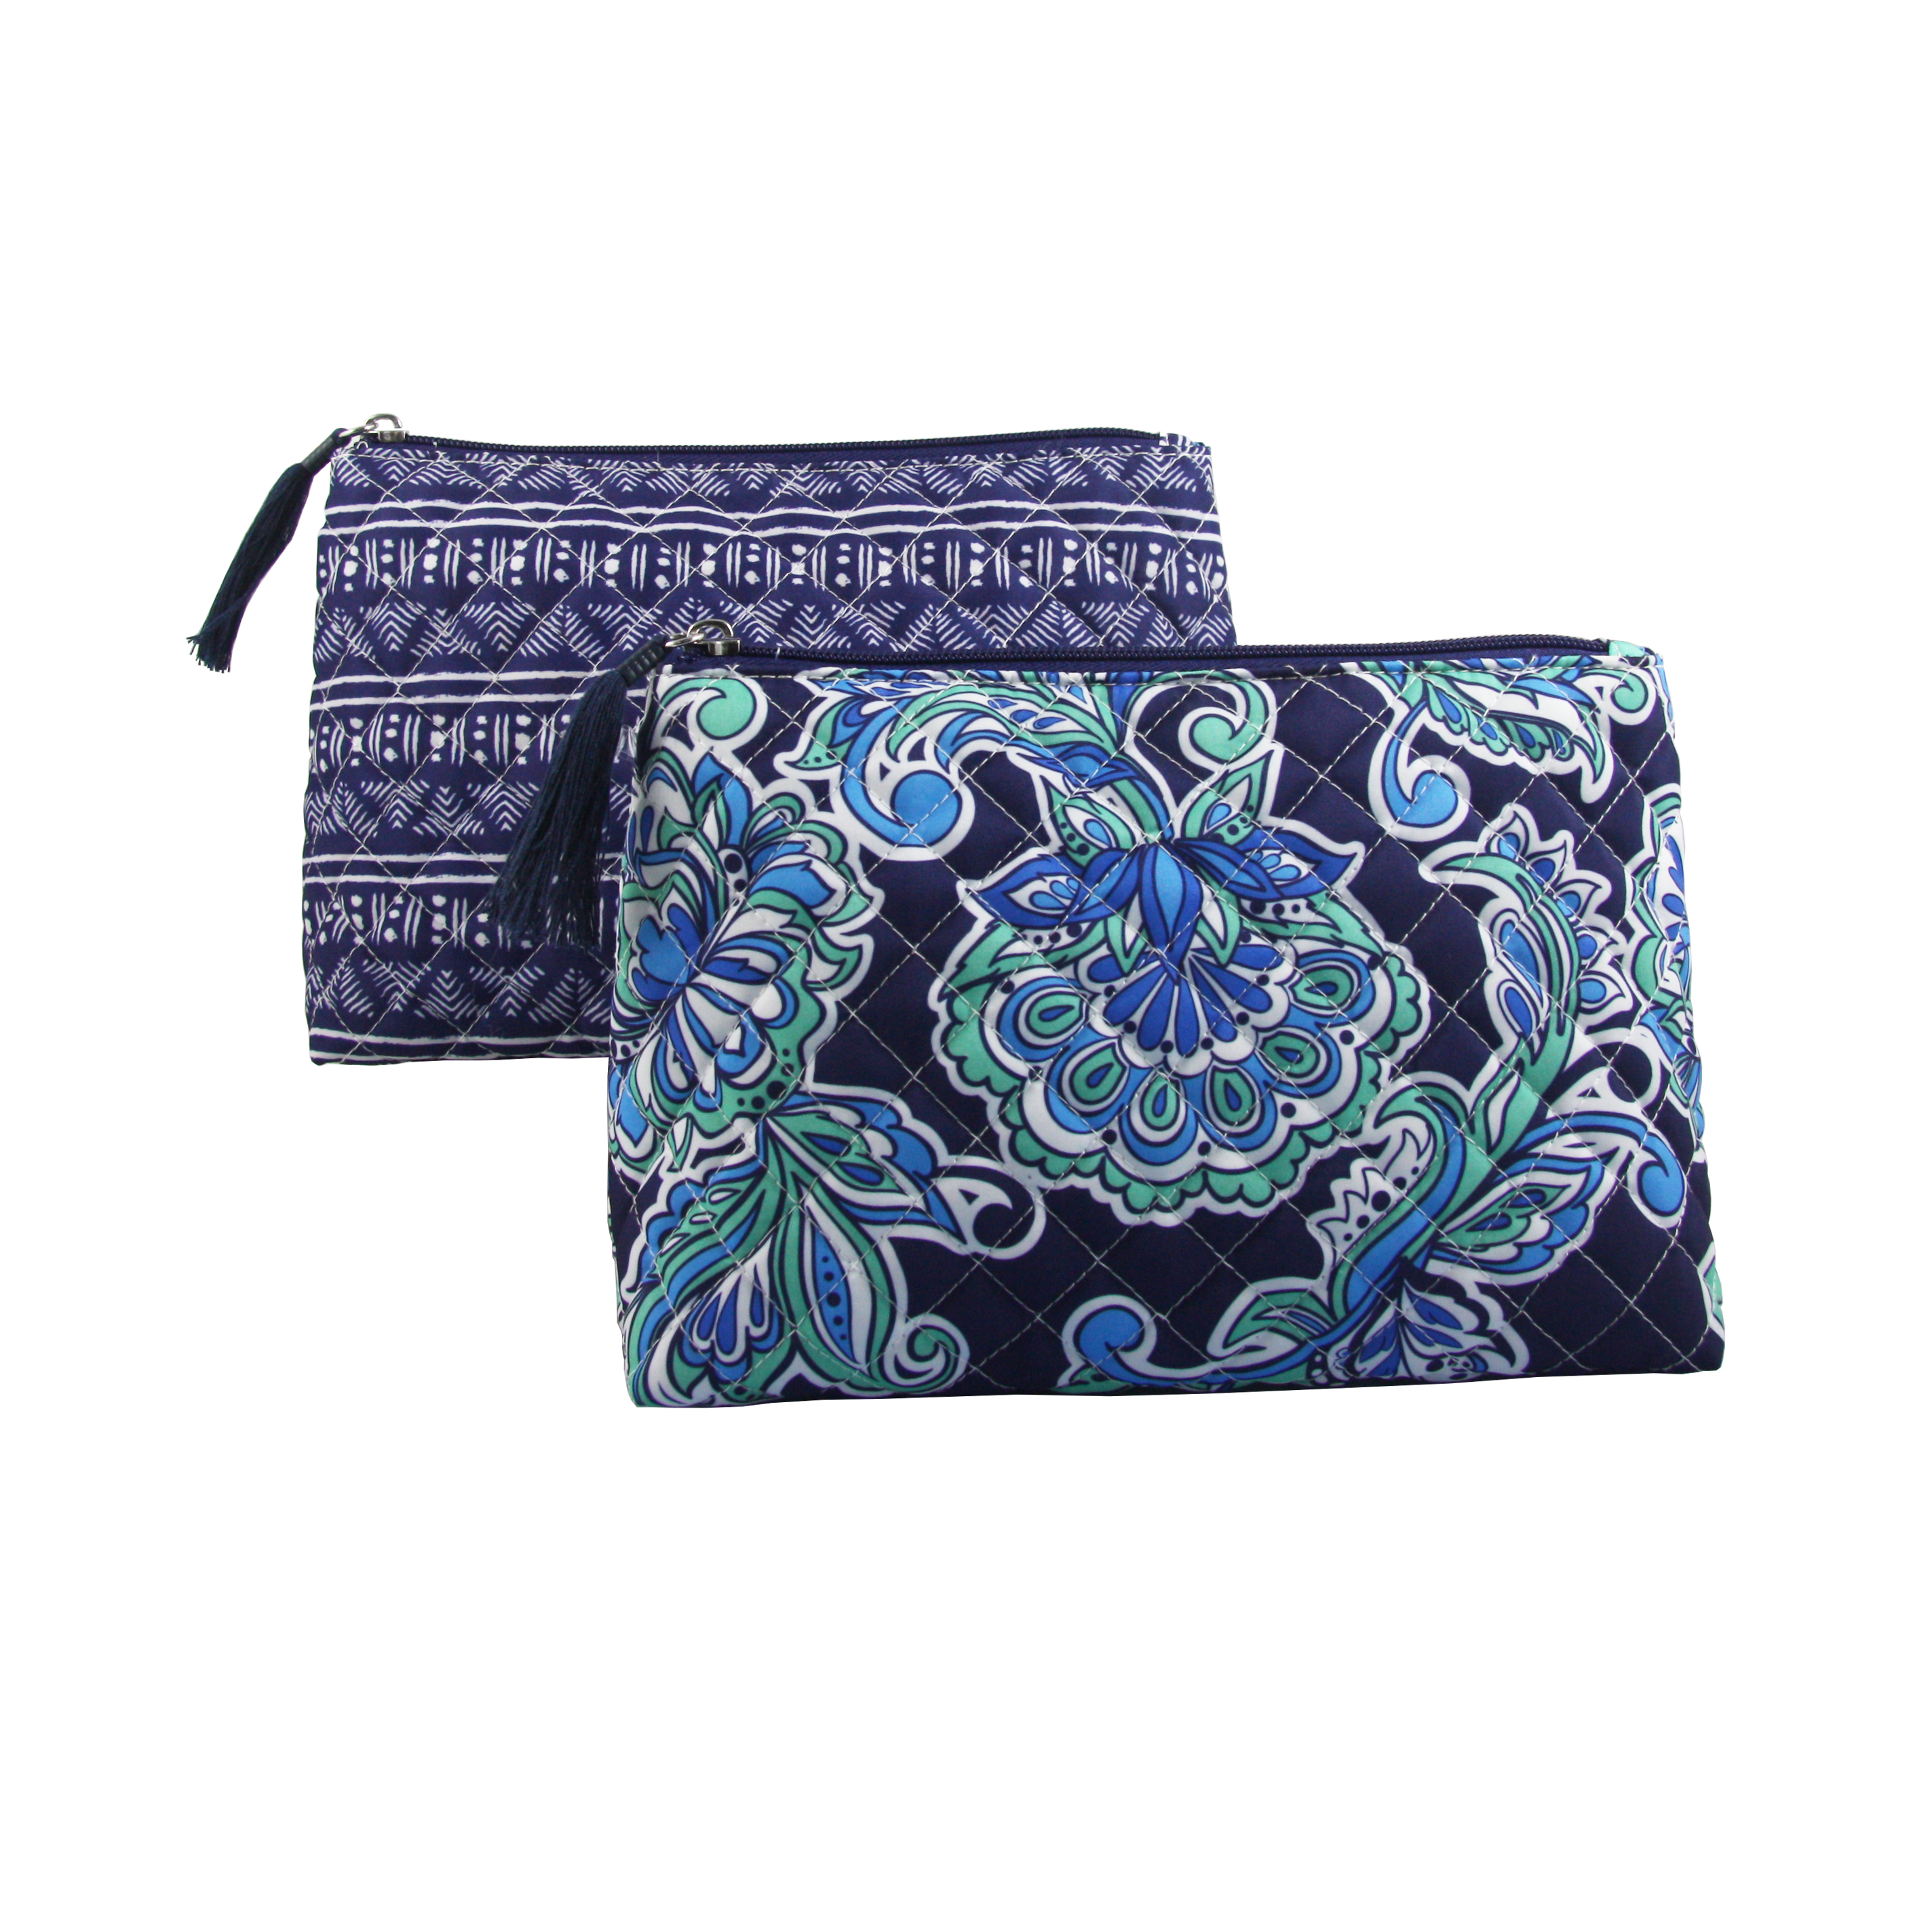 Modella Navy Quilted Paisley Fitted Clutch